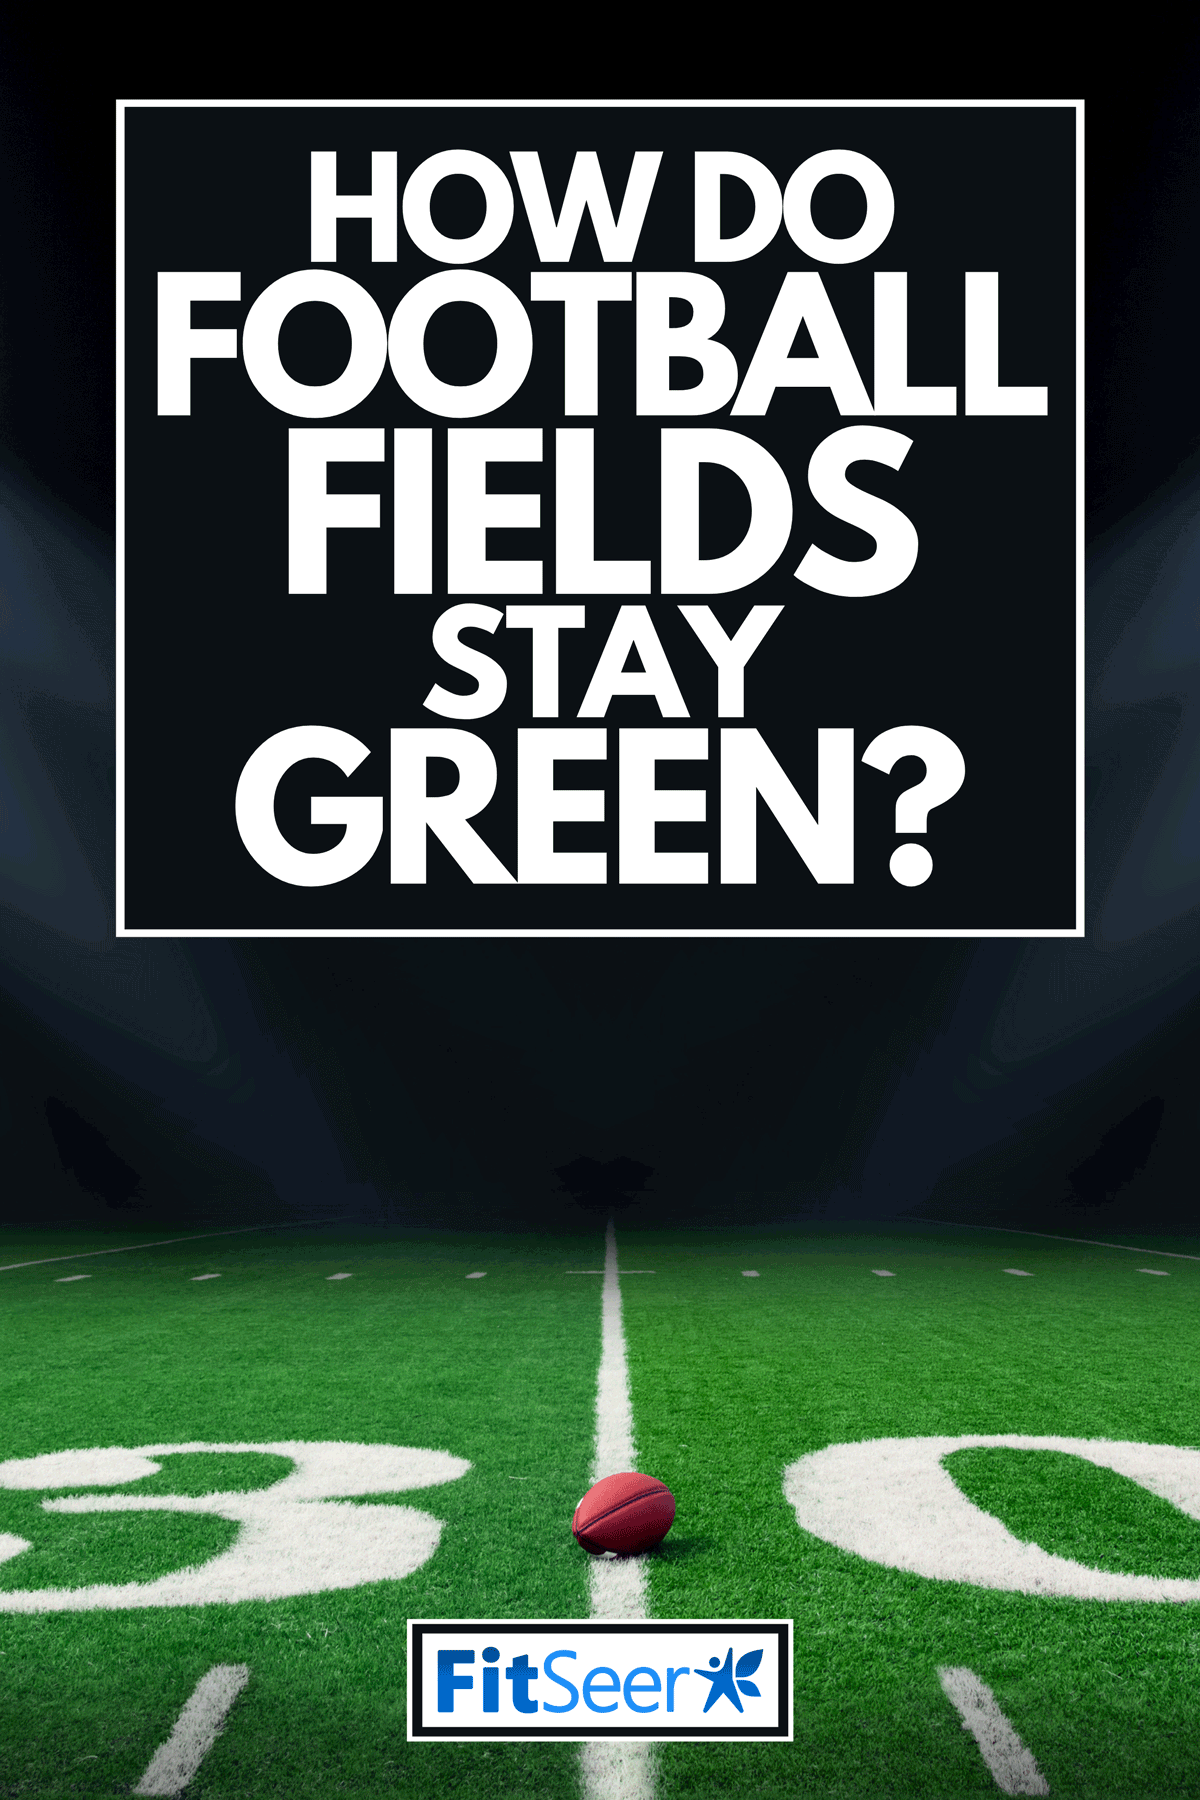 A football field at night with stadium lights, How Do Football Fields Stay Green?